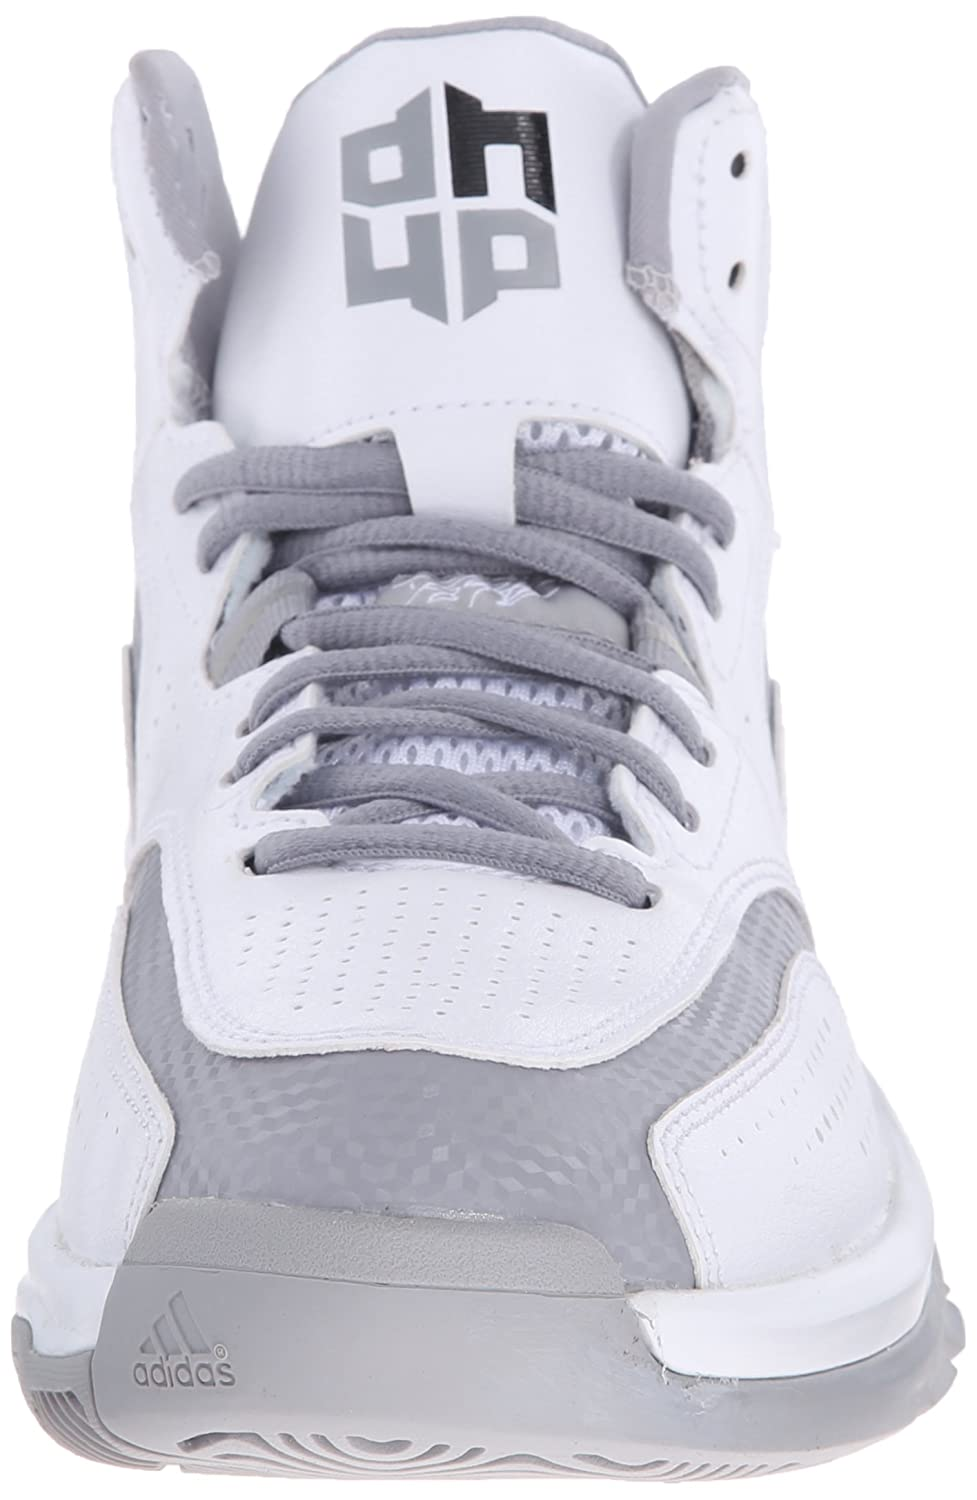 check out bf1bb 53439 Amazon.com   adidas Performance Men s D Howard 6 Basketball Shoe   Fashion  Sneakers